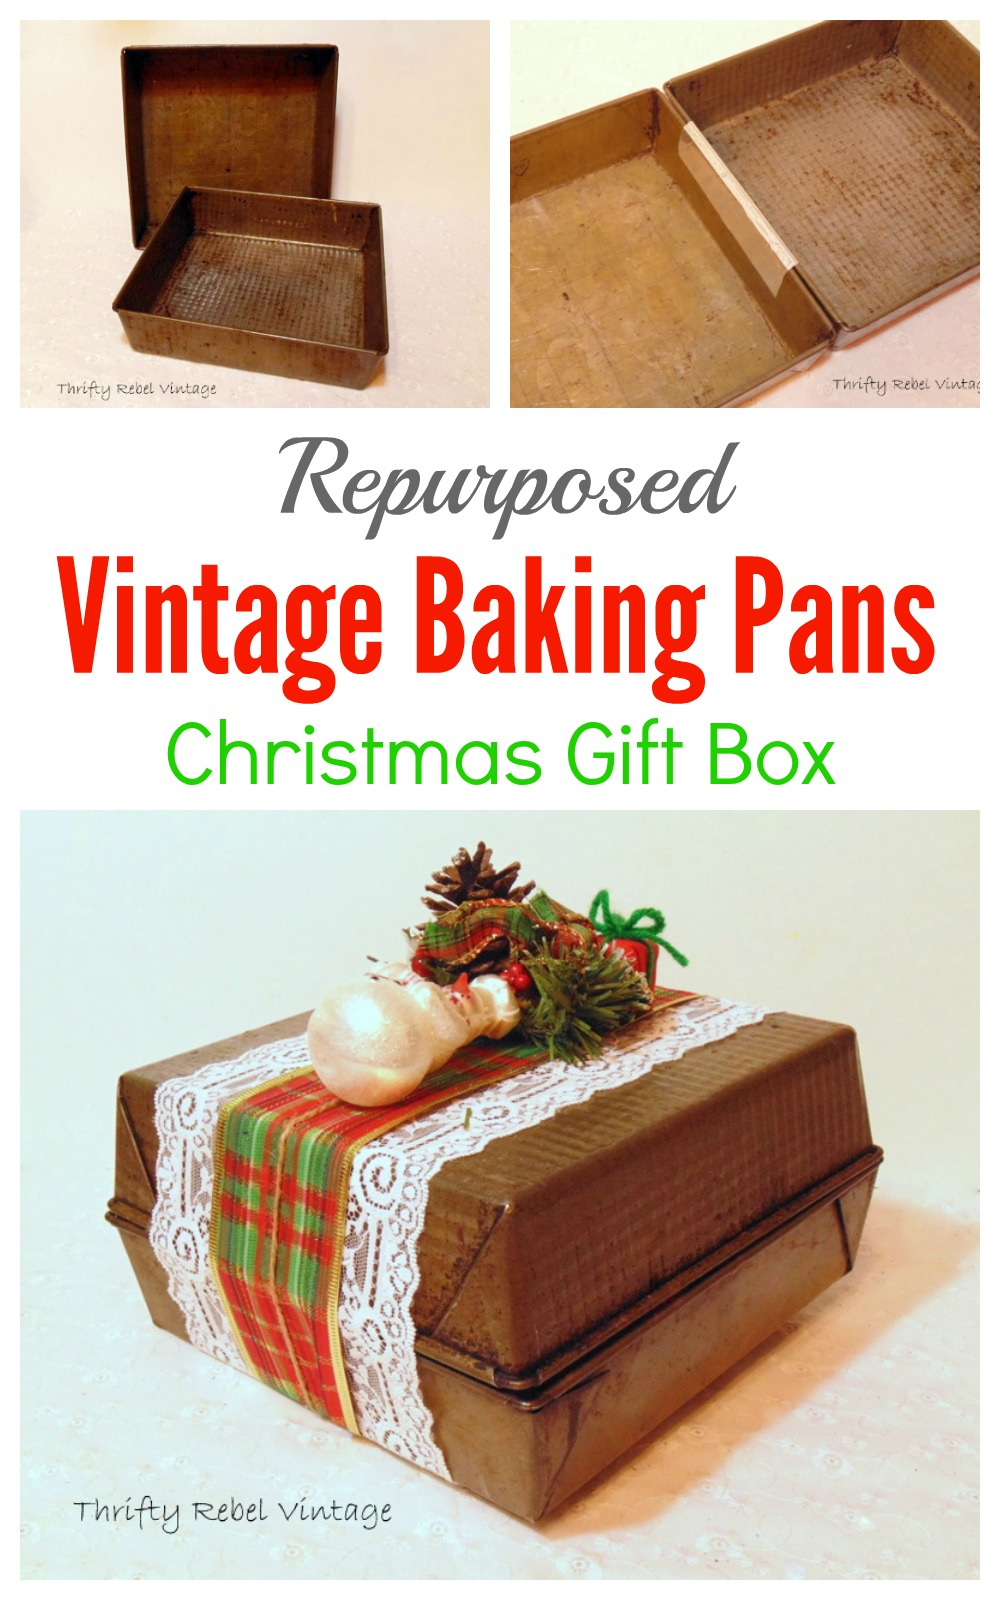 How to Make a Repurposed Vintage Baking Pan Gift box